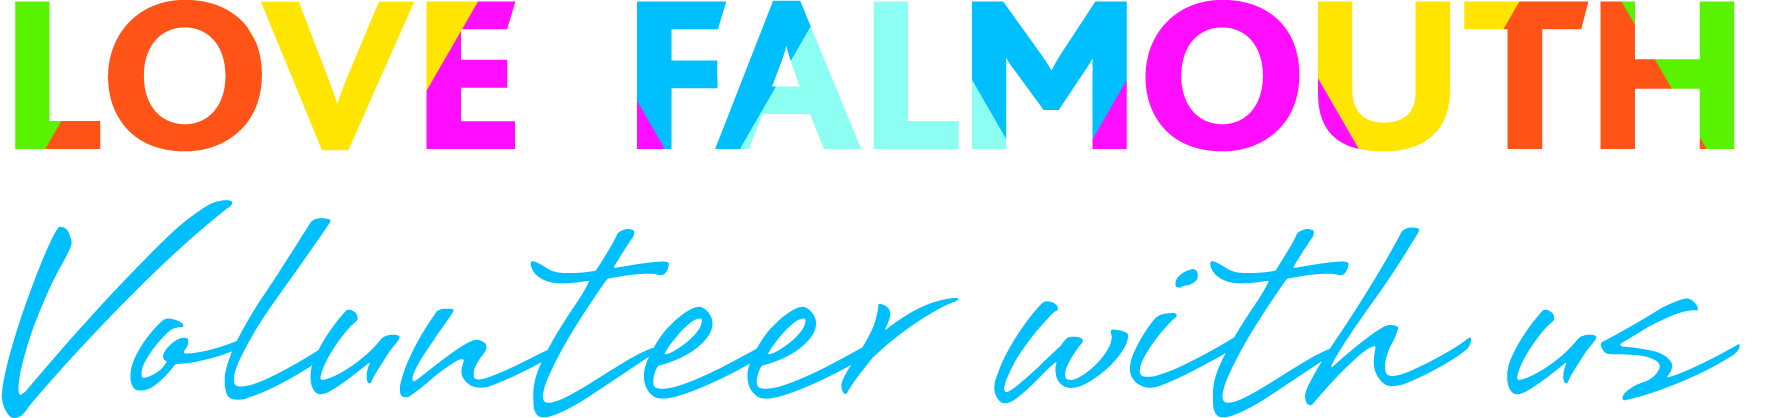 Love Falmouth: Volunteer Makers Logo